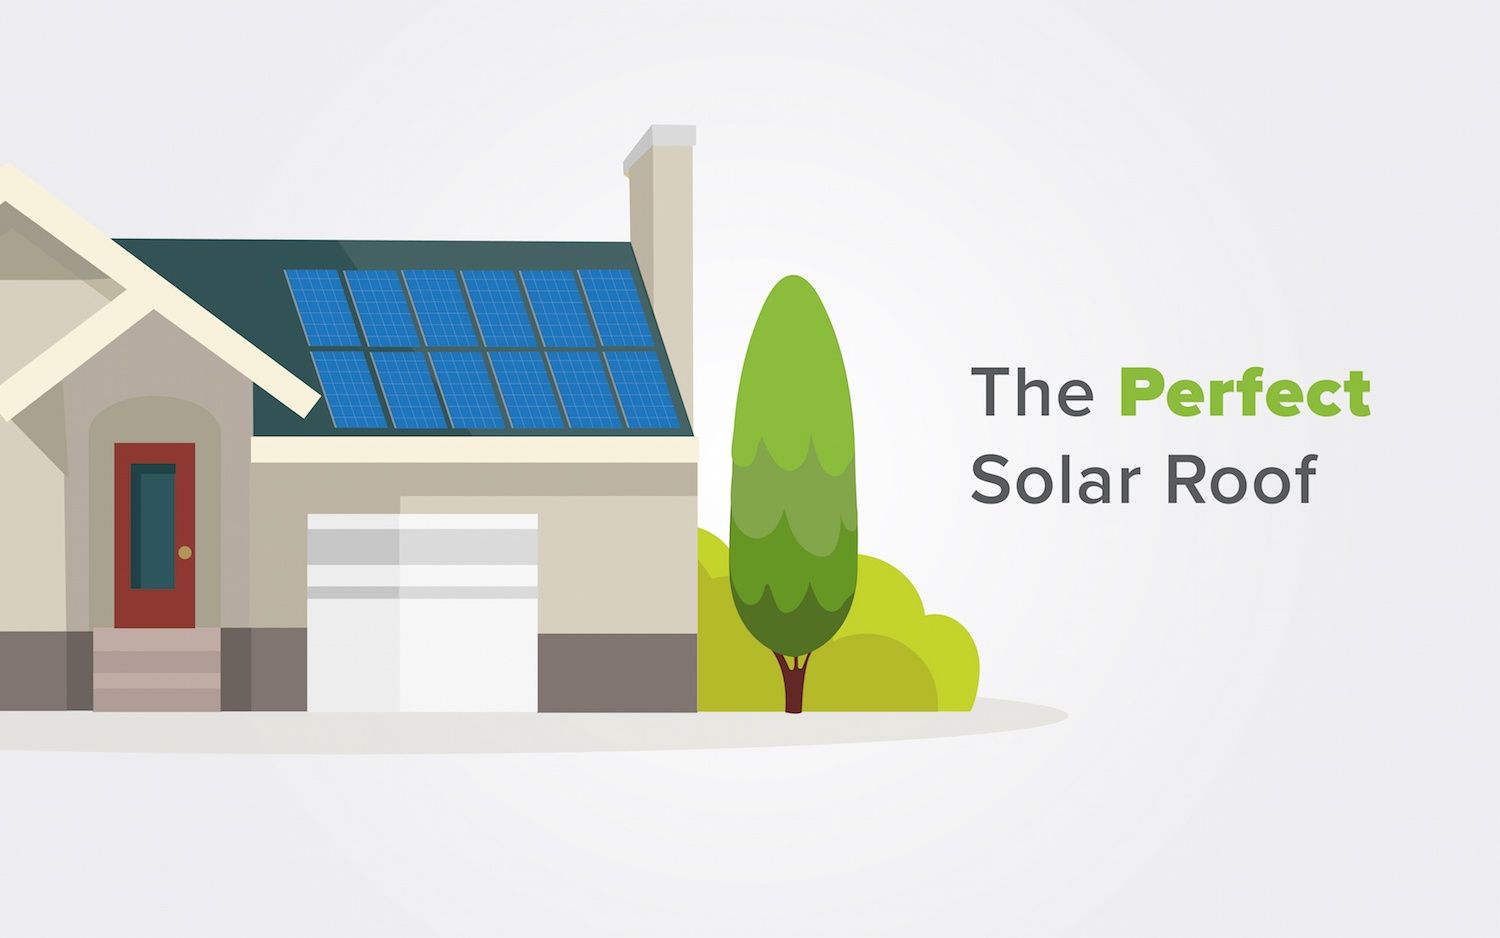 What is the perfect solar roof?